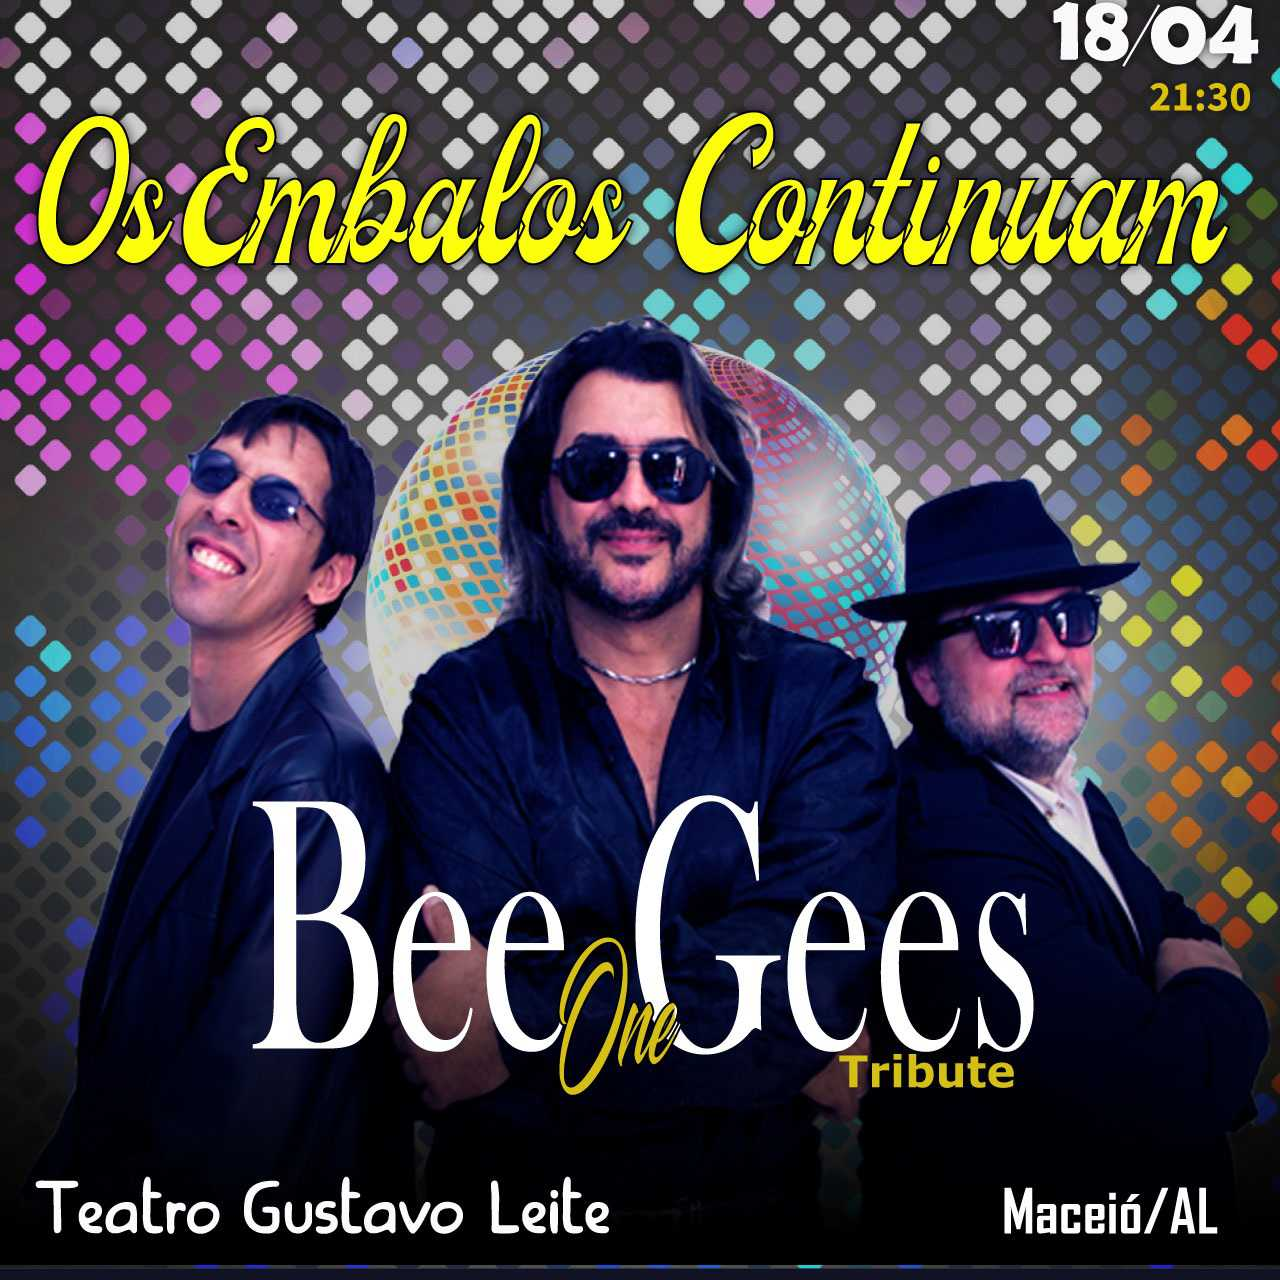 Bee Gees One Tribute